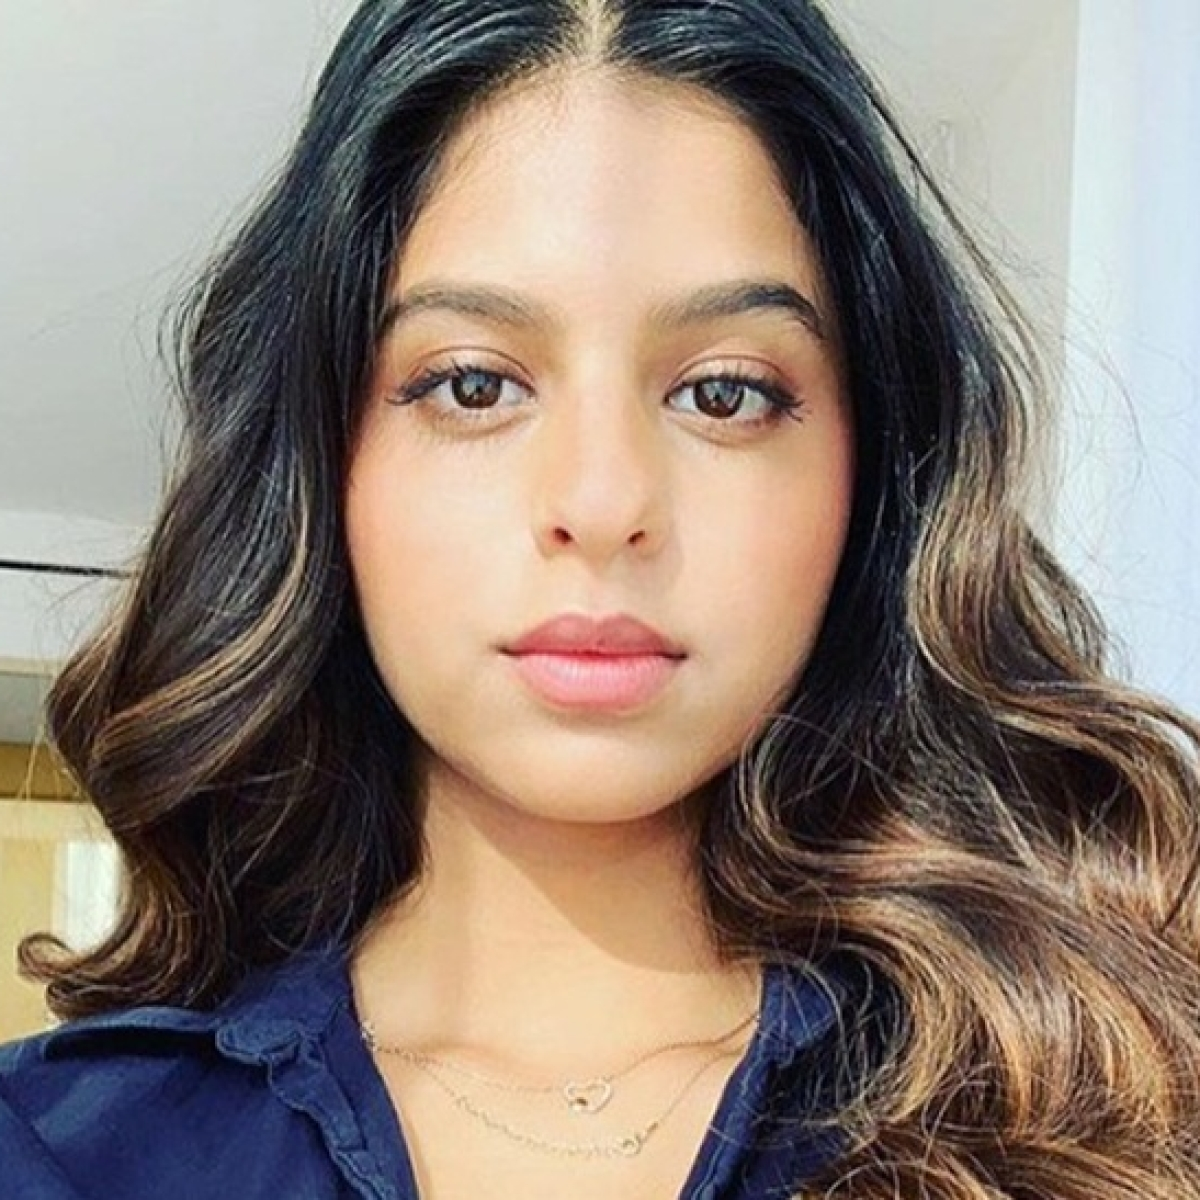 Suhana Khan is a dazzling diva as she flaunts her new hairstyle in latest pics